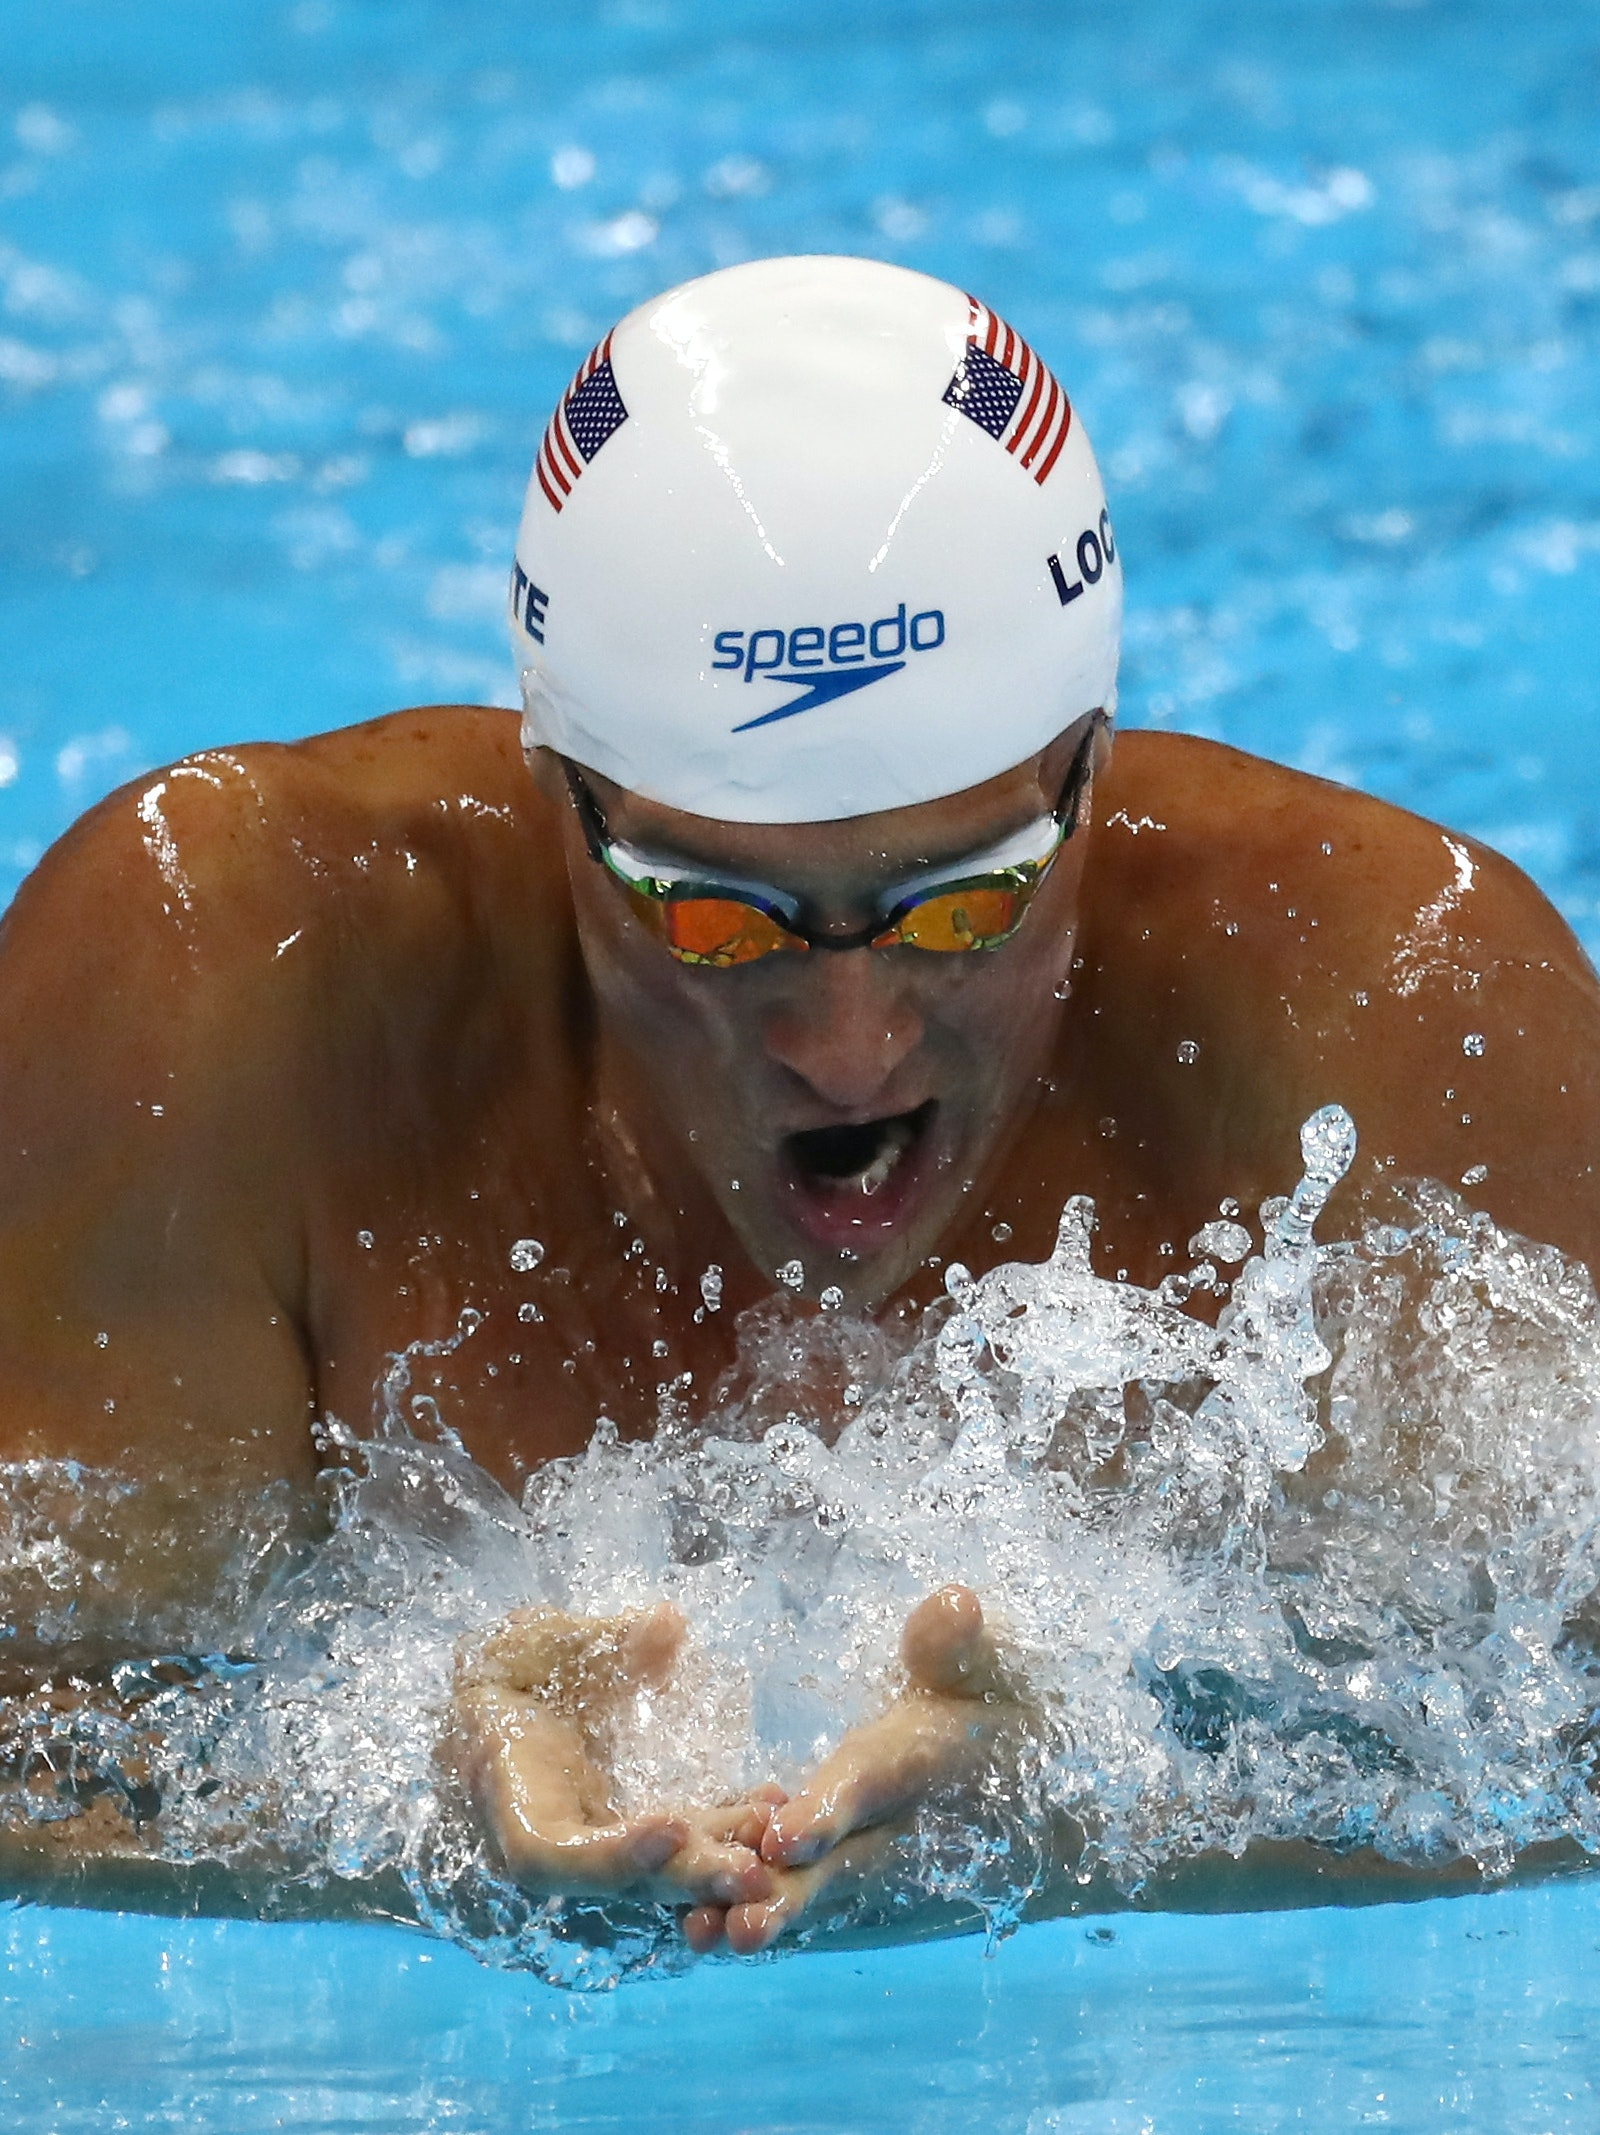 RIO DE JANEIRO, BRAZIL - AUGUST 10:  Ryan Lochte of the United States in the Men's 200m Individual Medley heat on Day 5 of the Rio 2016 Olympic Games at the Olympic Aquatics Stadium on August 10, 2016 in Rio de Janeiro, Brazil.  (Photo by Al Bello/Getty Images)